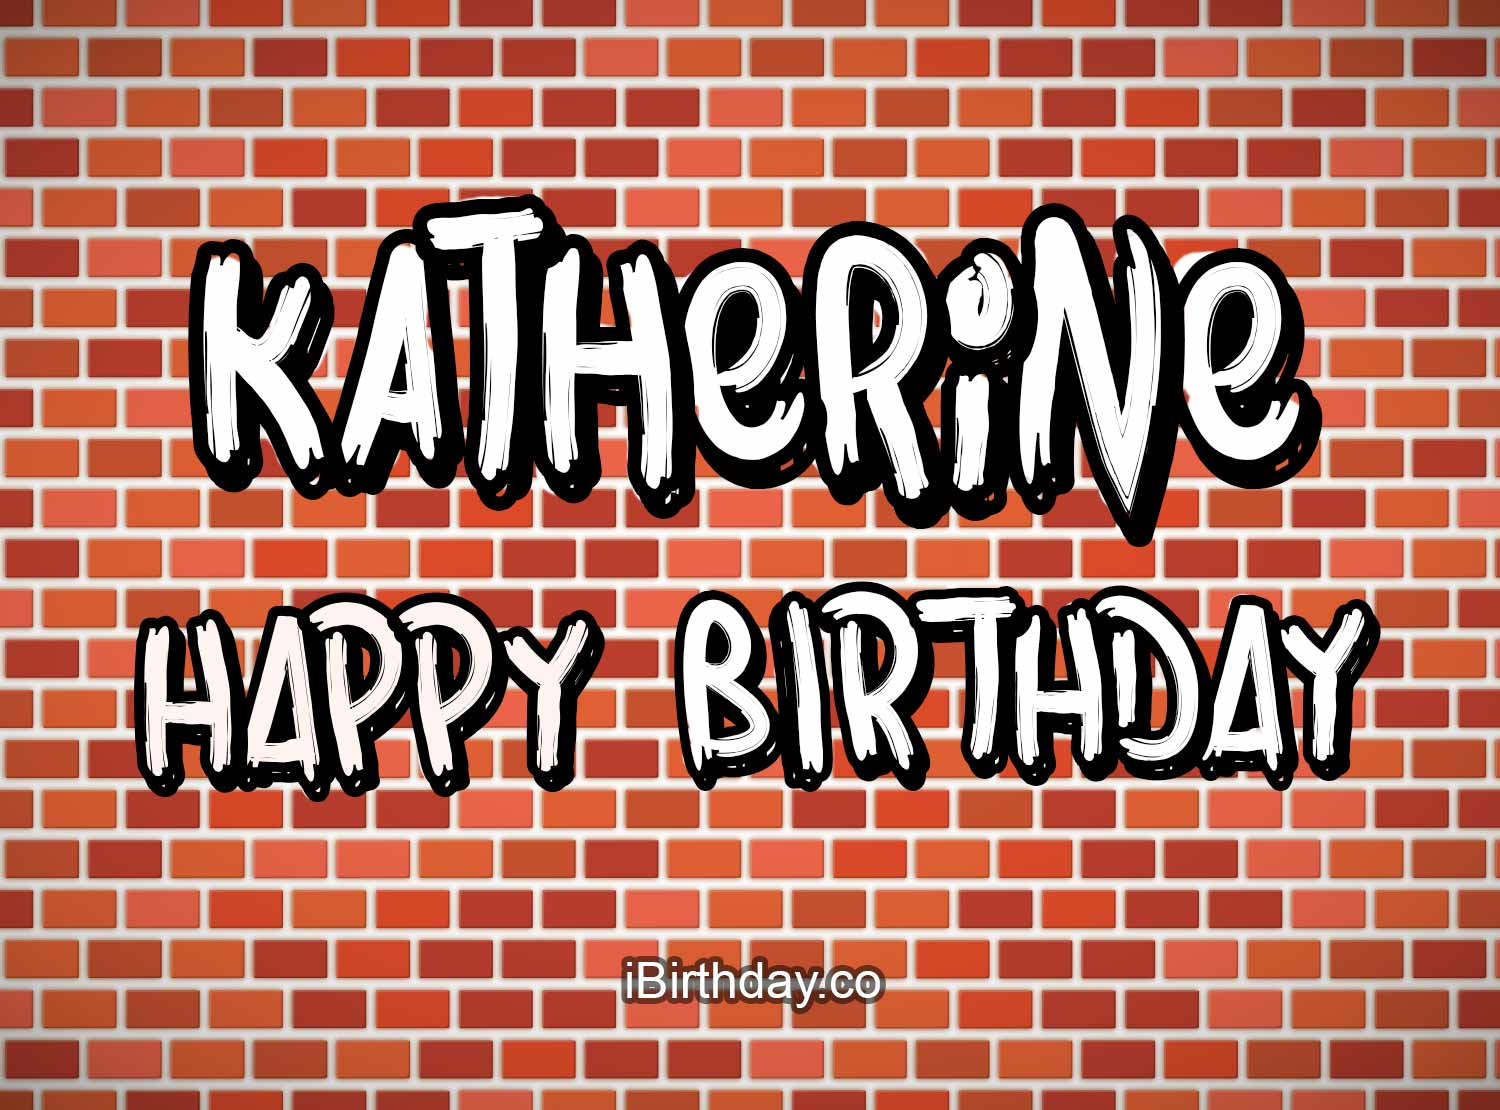 Katherine Graphite Birthday Meme Happy Birthday